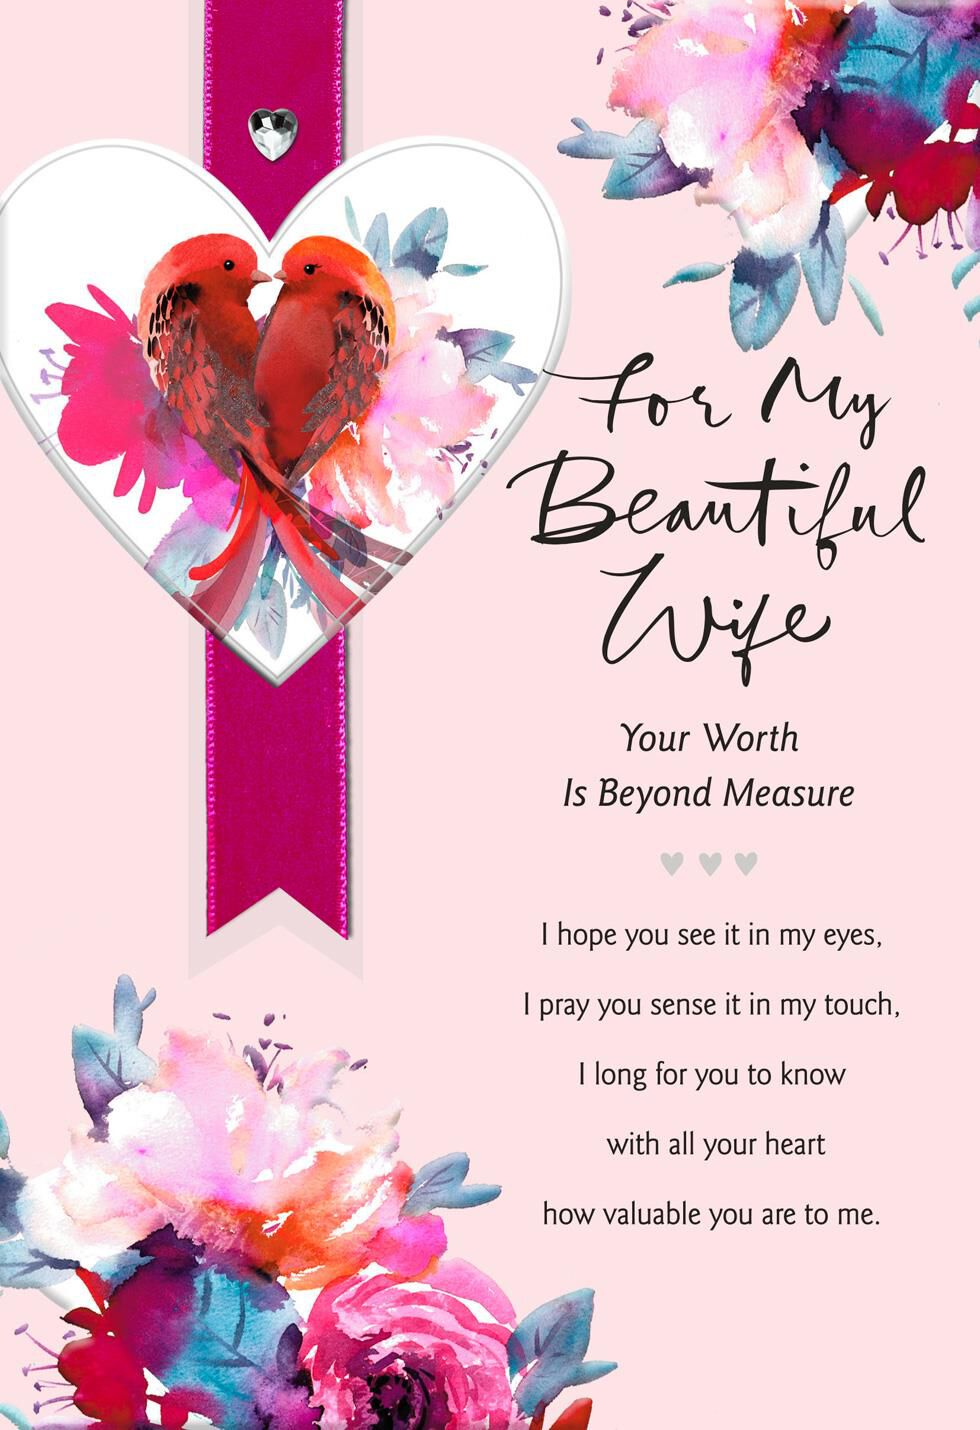 Lovebirds Religious Valentines Day Card For Wife Greeting Cards Religious  Valentine   Christian Valentine Poems